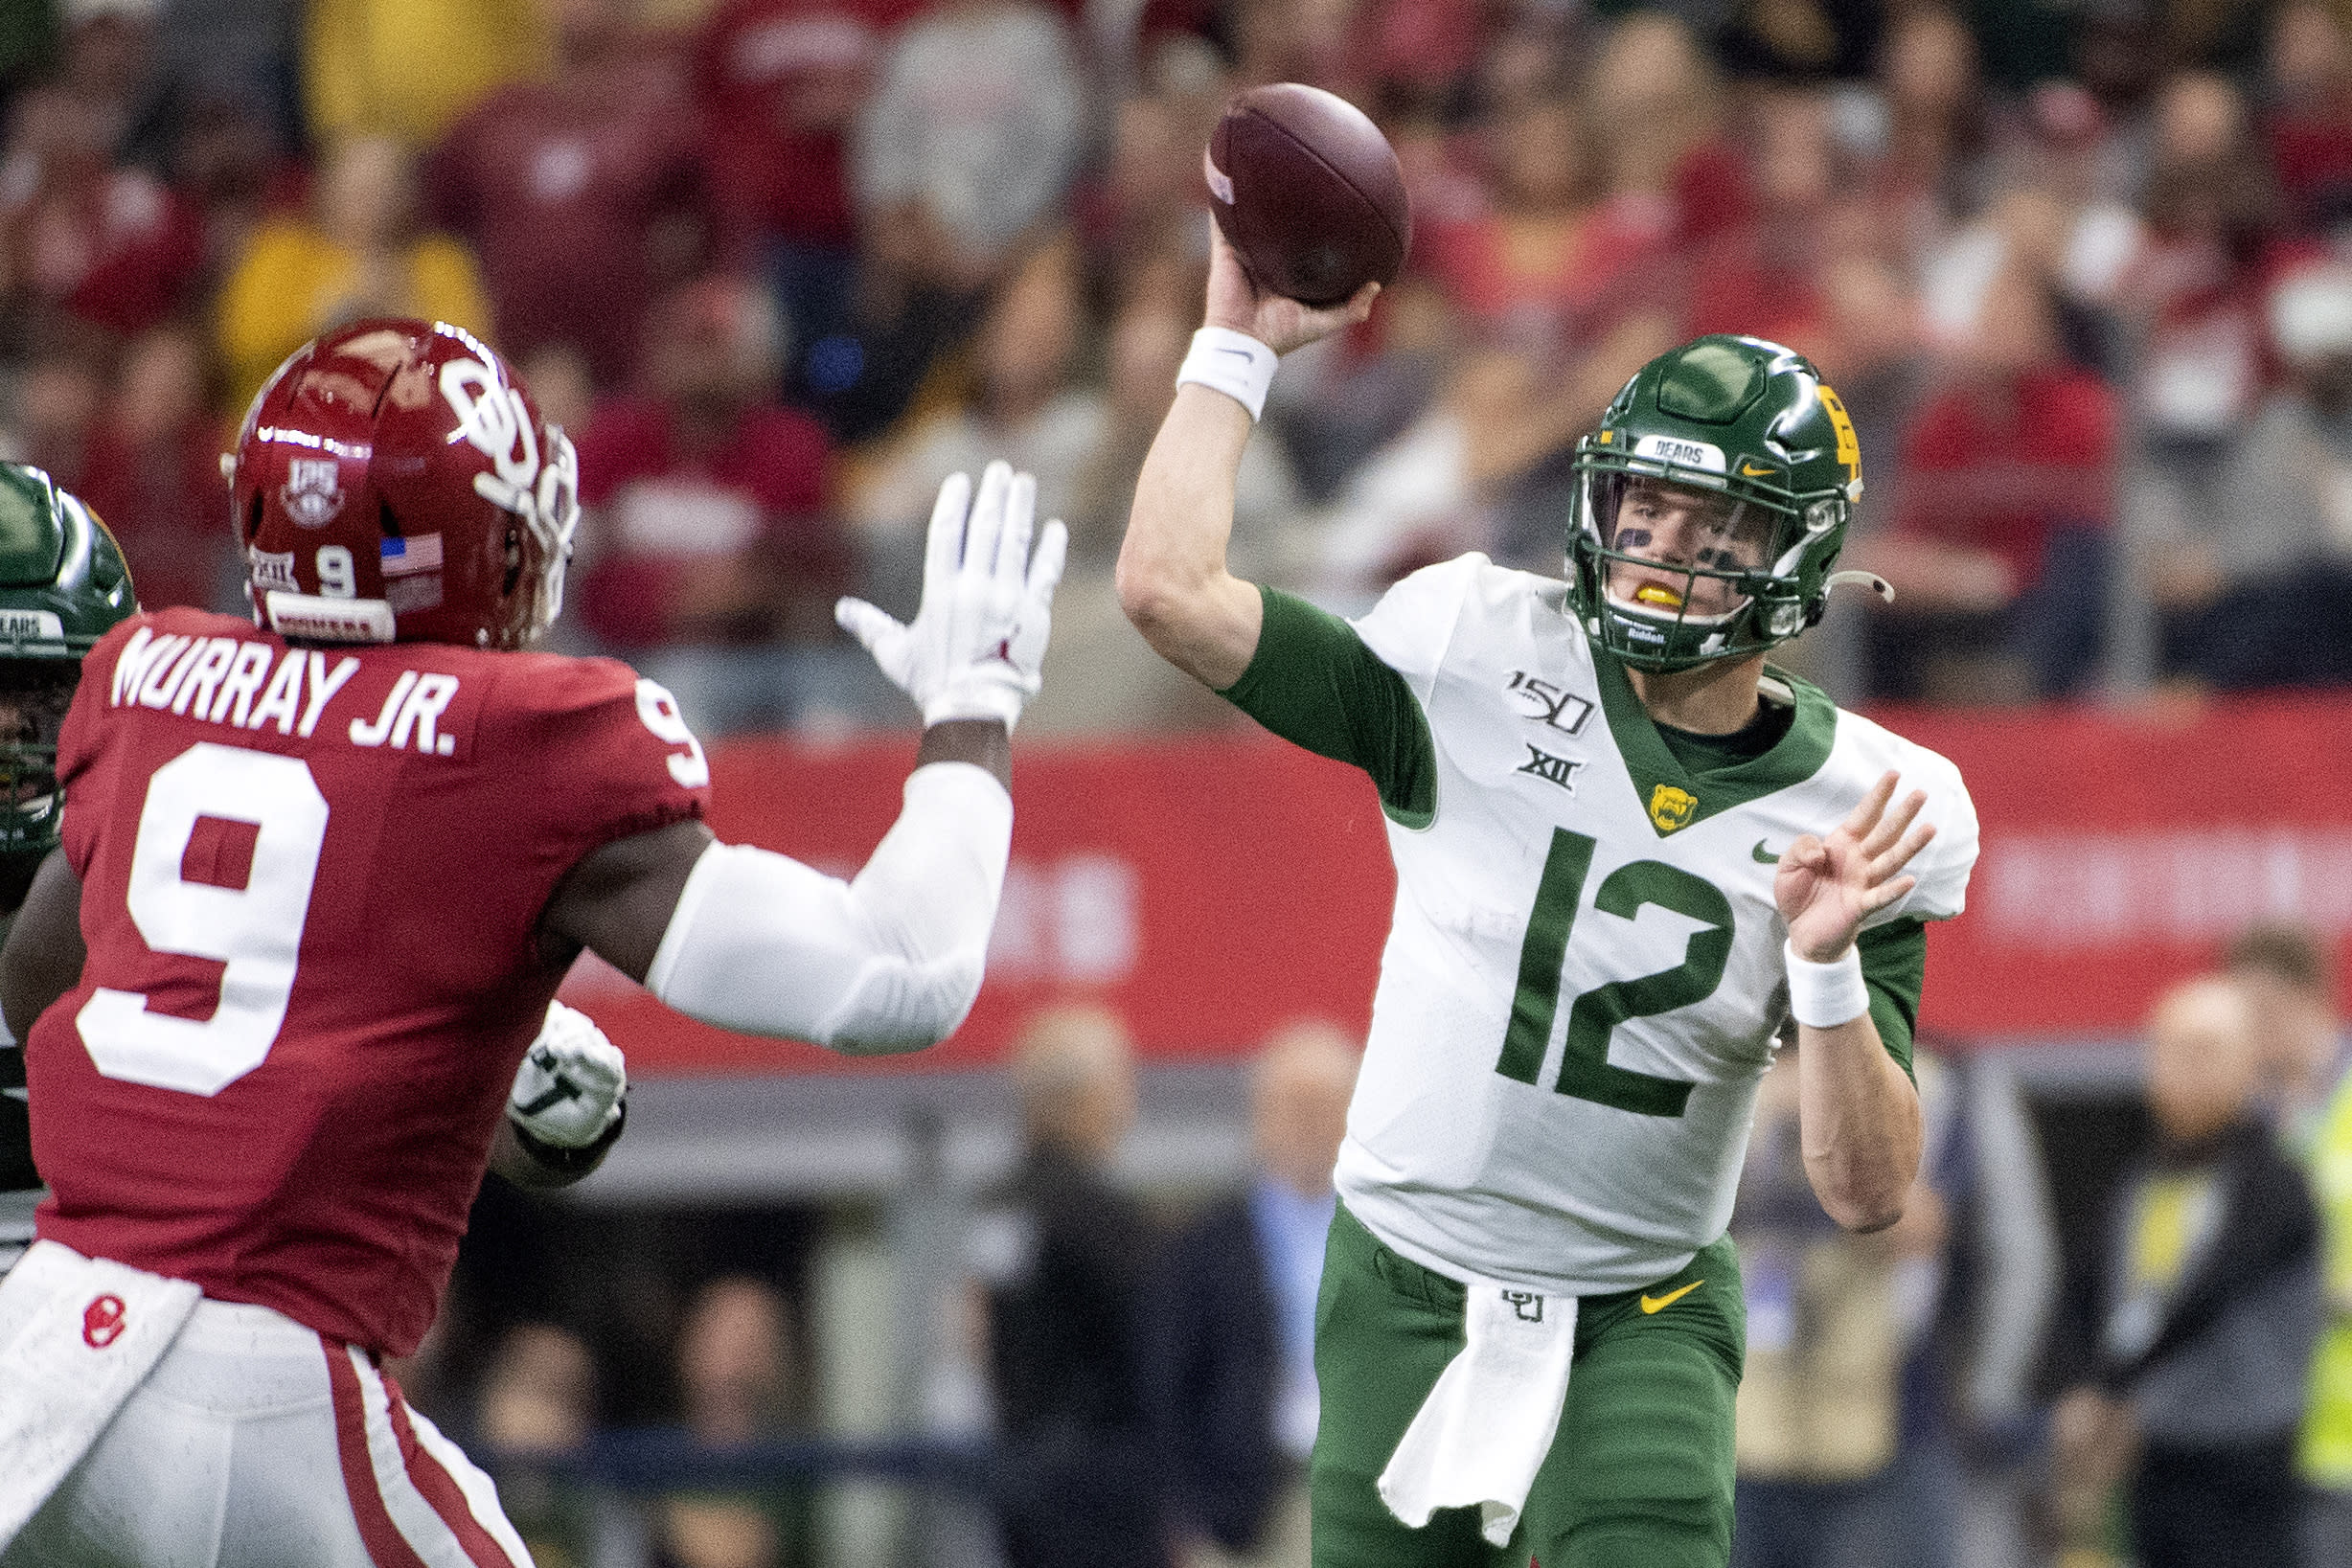 File-Baylor quarterback Charlie Brewer (12) throws past the defense of Oklahoma linebacker Kenneth Murray (9) during the first half of an NCAA college football game for the Big 12 Conference championship, Saturday, Dec. 7, 2019, in Arlington, Texas. Brewer never spent a lot of time thinking about how beat up he was at the end of last season after a tough finish for the Bears. But he just might slide a little more in his fourth season as Baylor starter, when the Big 12 runner-up Bears hope to get a step farther with a new coach coming off a national championship. (AP Photo/Jeffrey McWhorter, File)